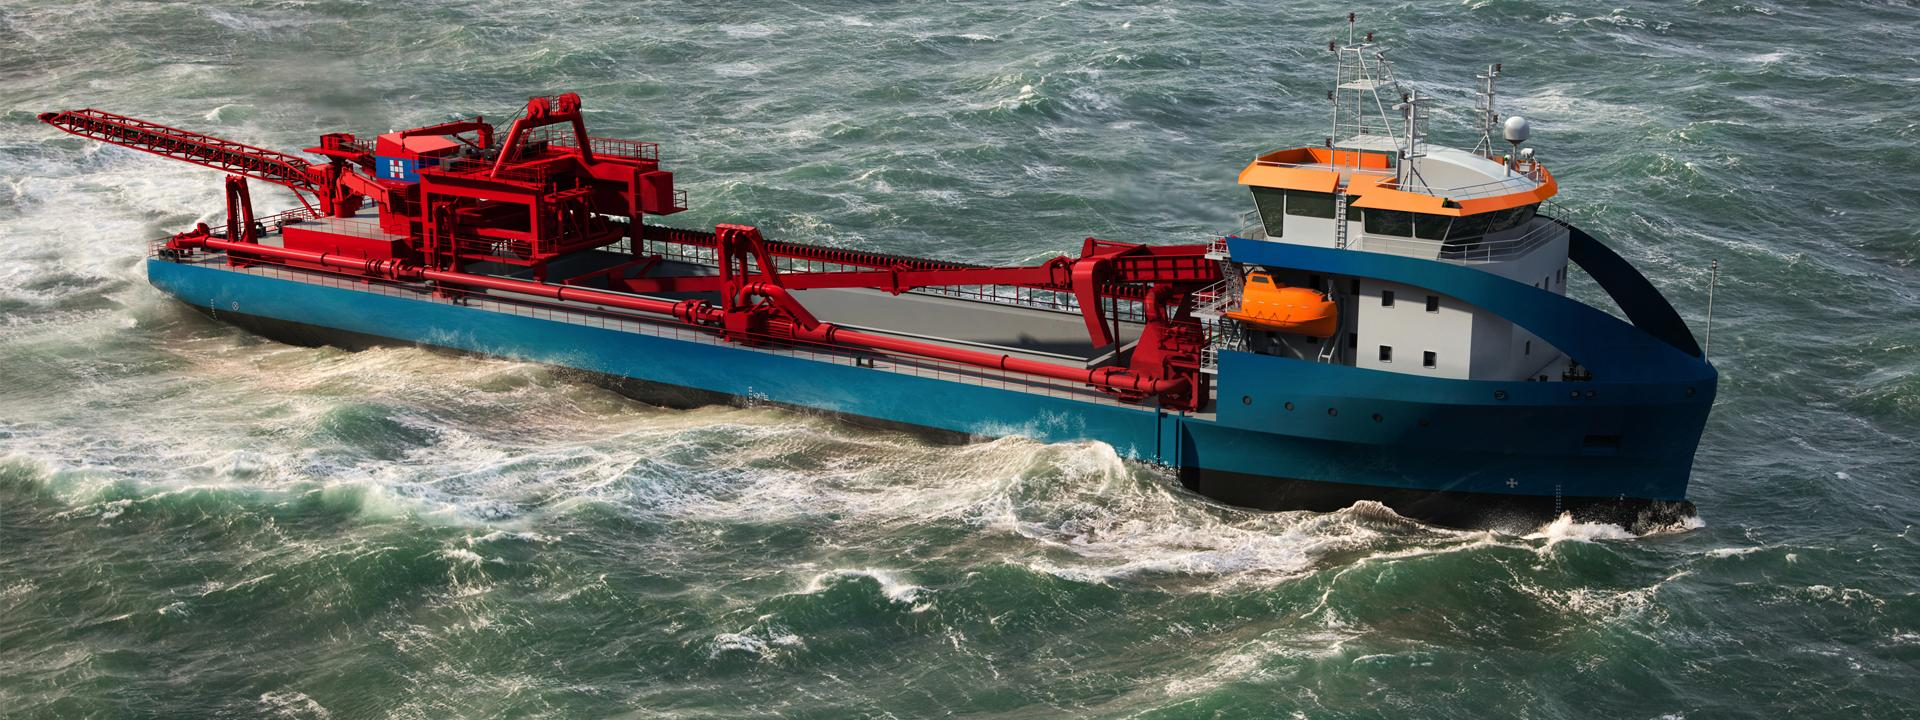 An artist's impression of the new dredger.